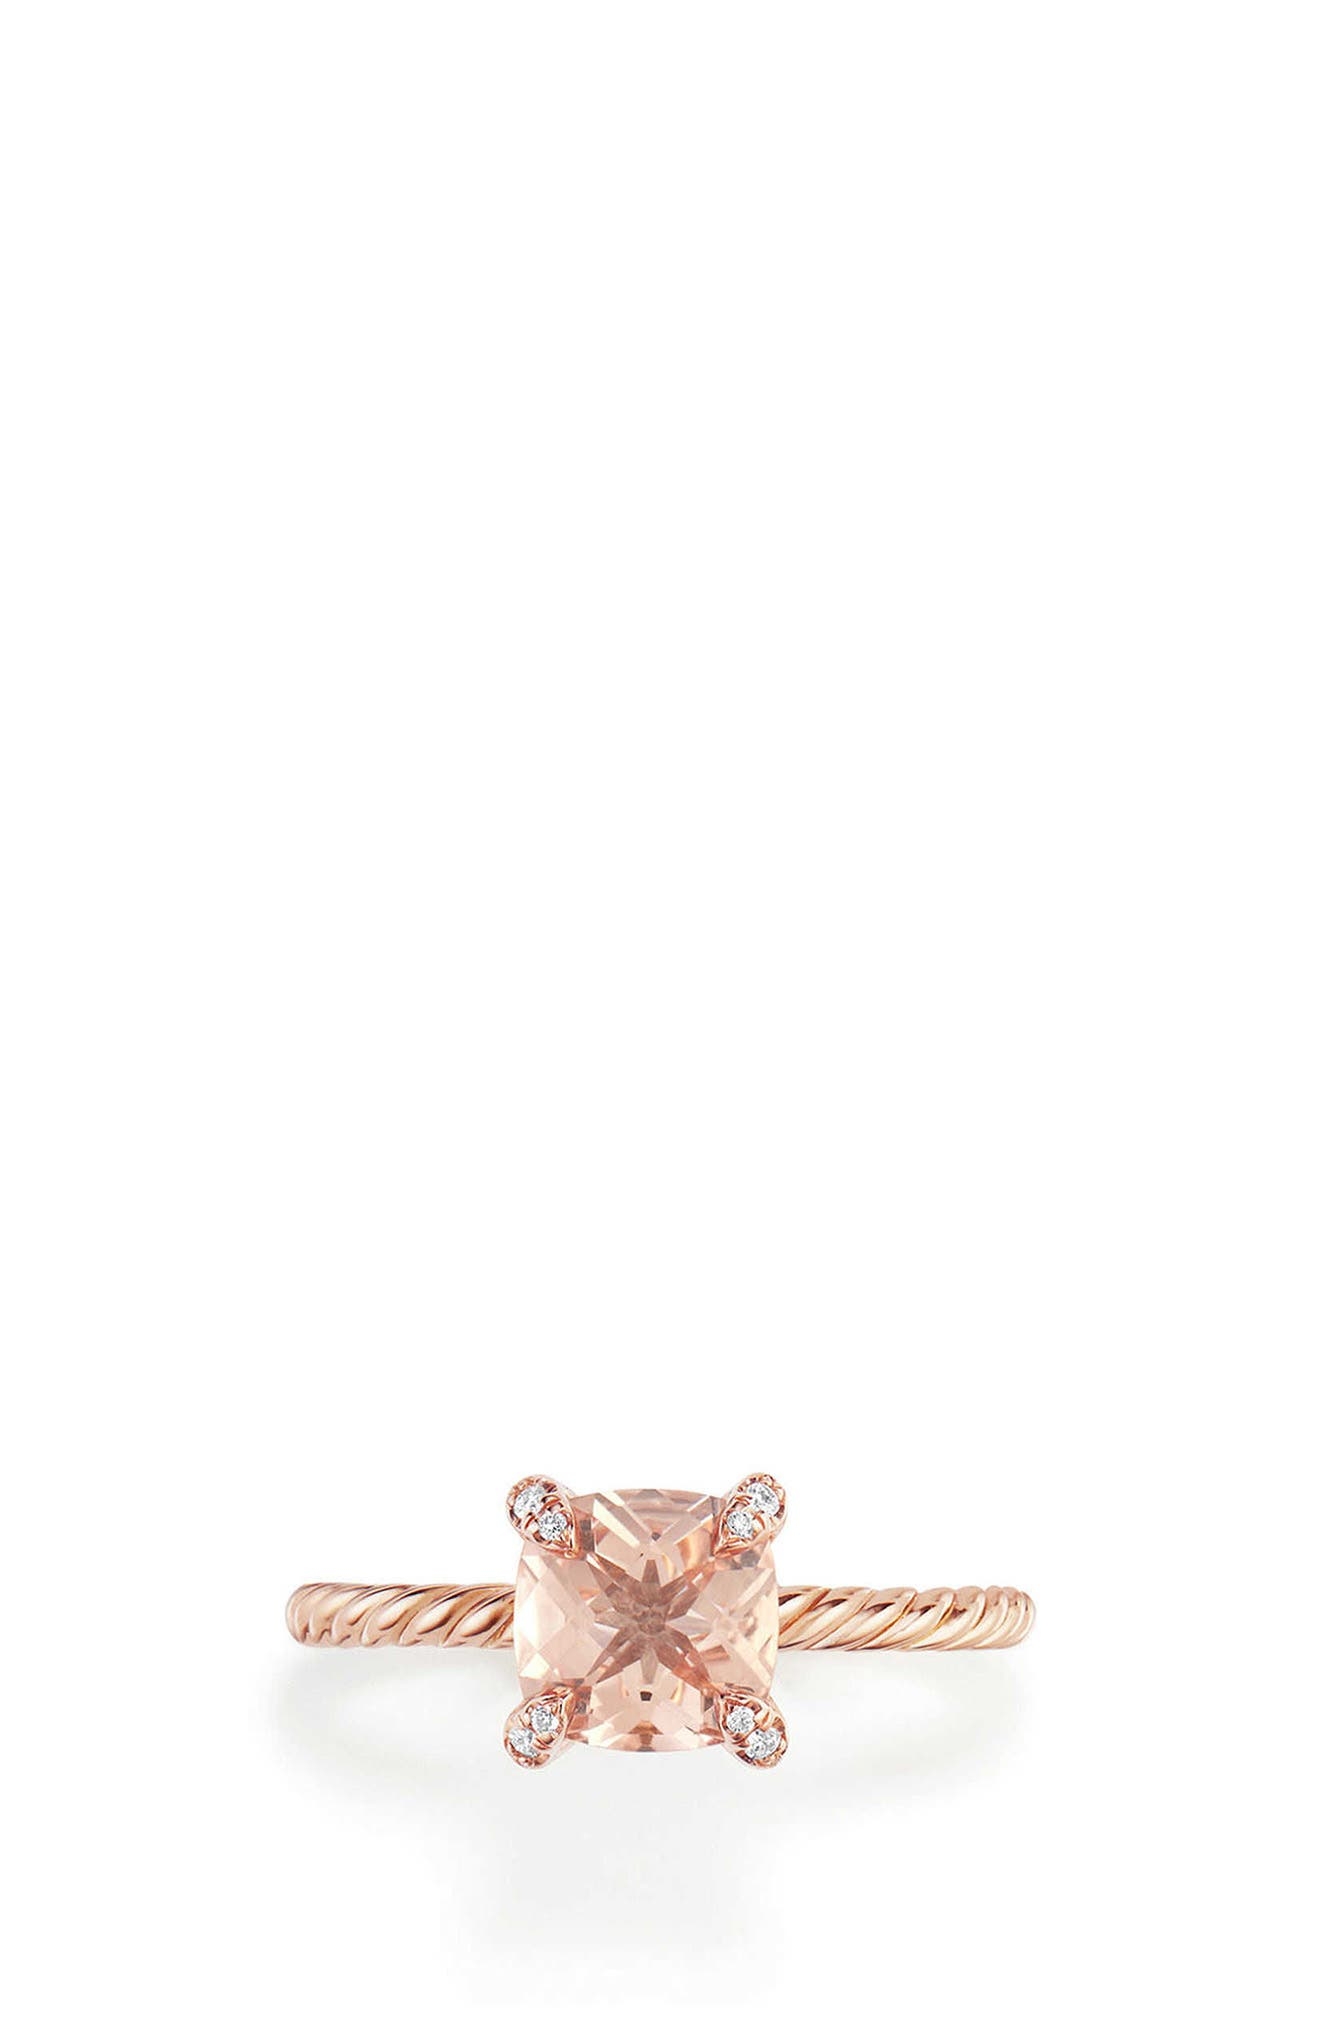 Chatelaine Ring with Morganite and Diamonds in 18K Rose Gold,                         Main,                         color, ROSE GOLD/ DIAMOND/ MORGANITE